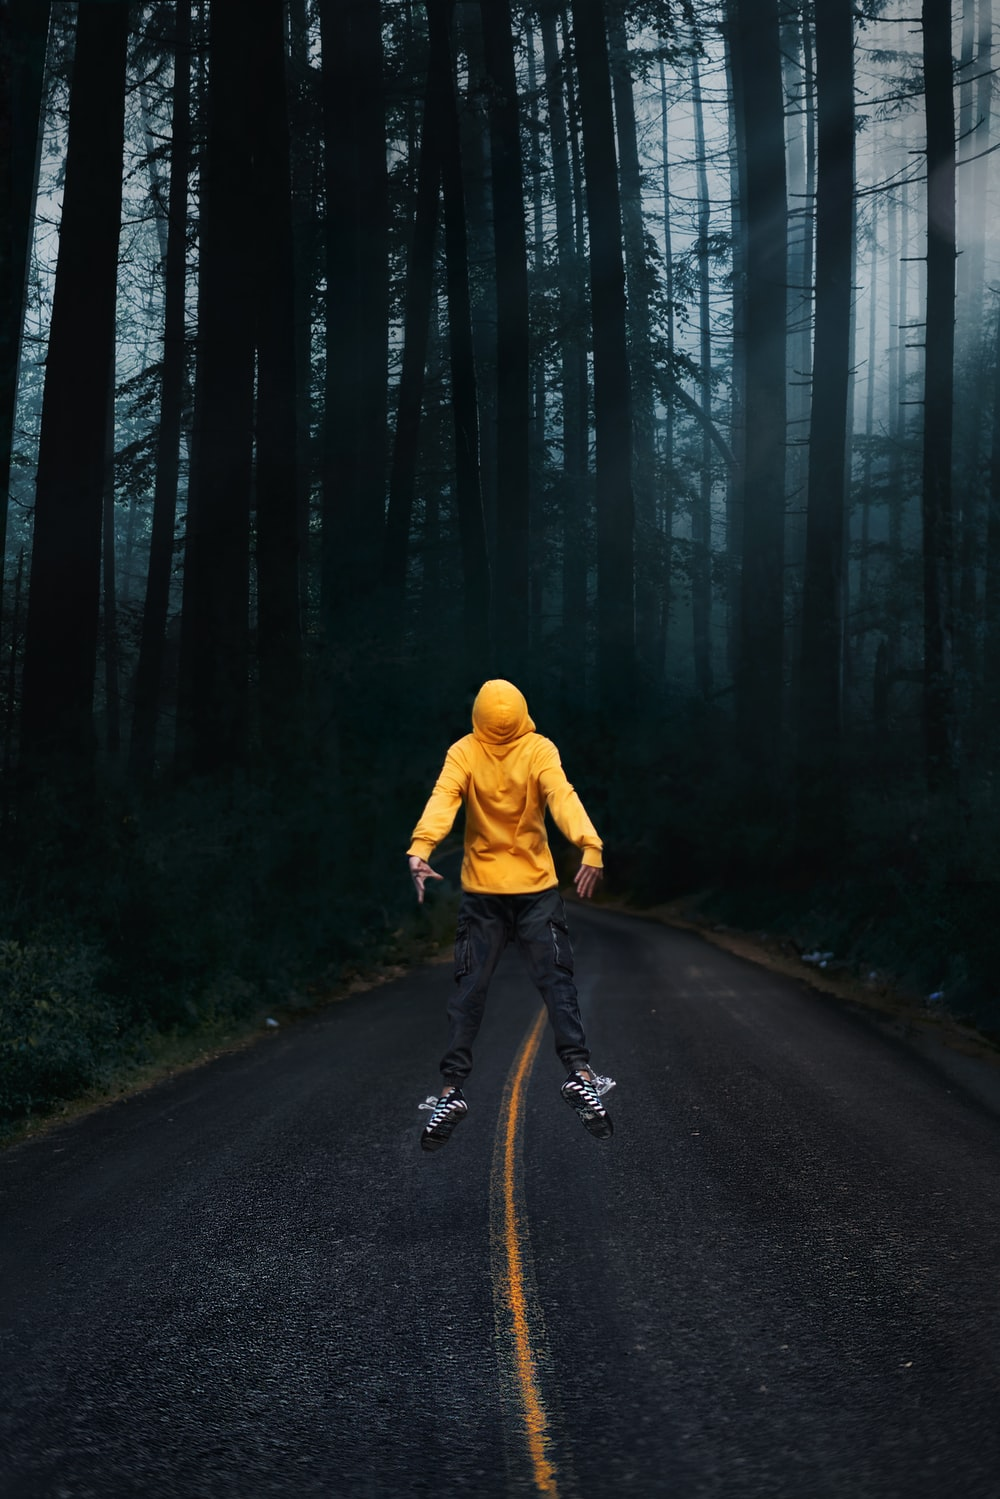 man in yellow hoodie and black pants riding bicycle on road during daytime